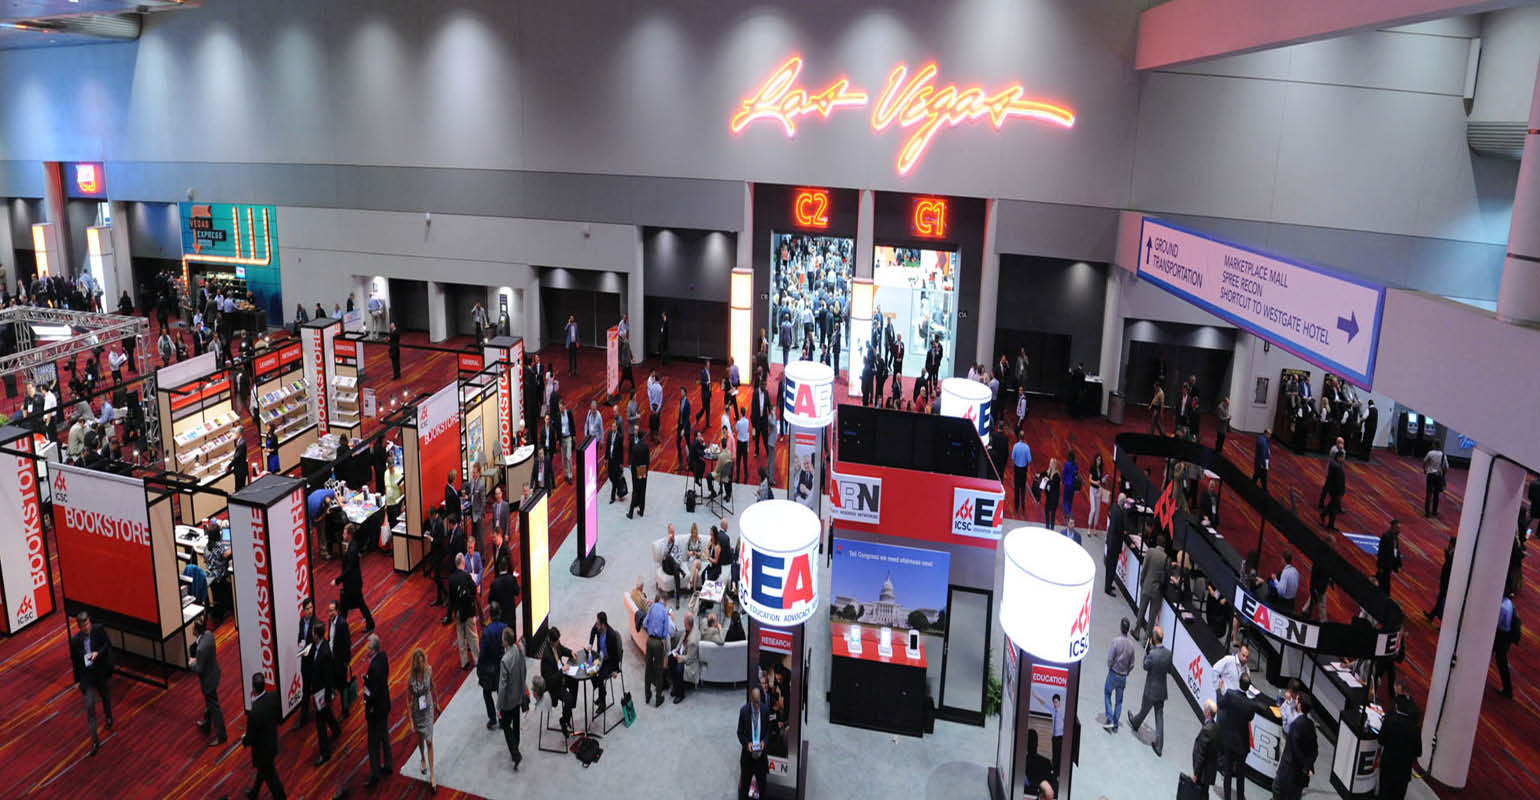 Some Concerns In The Air As Icsc Recon Kicks Off